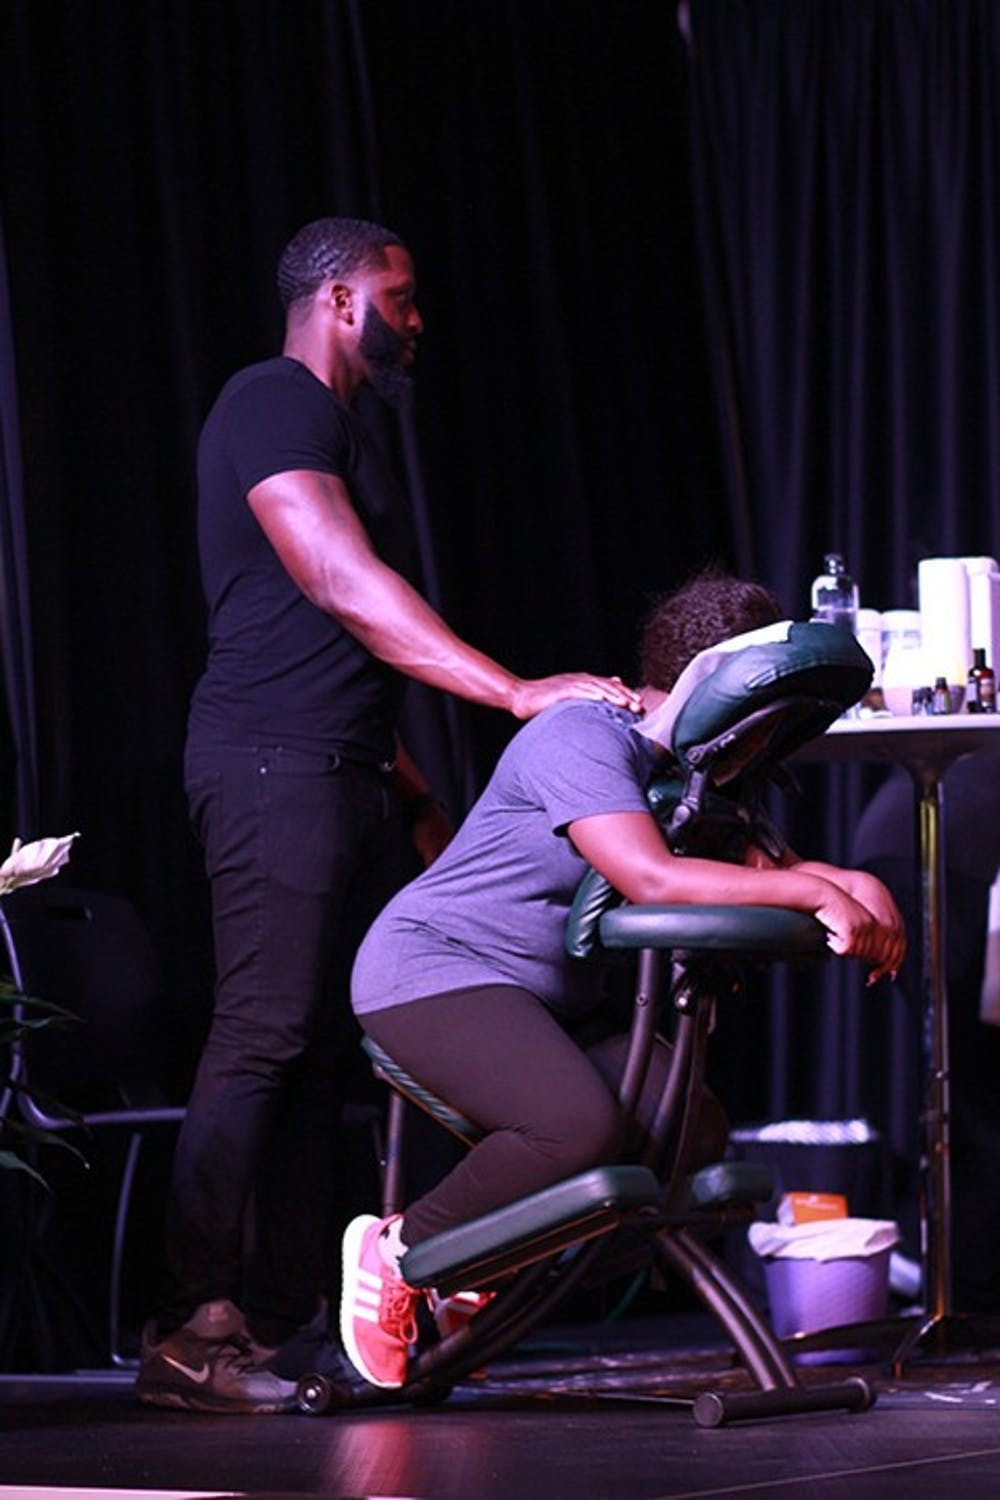 Students kick back with spa night